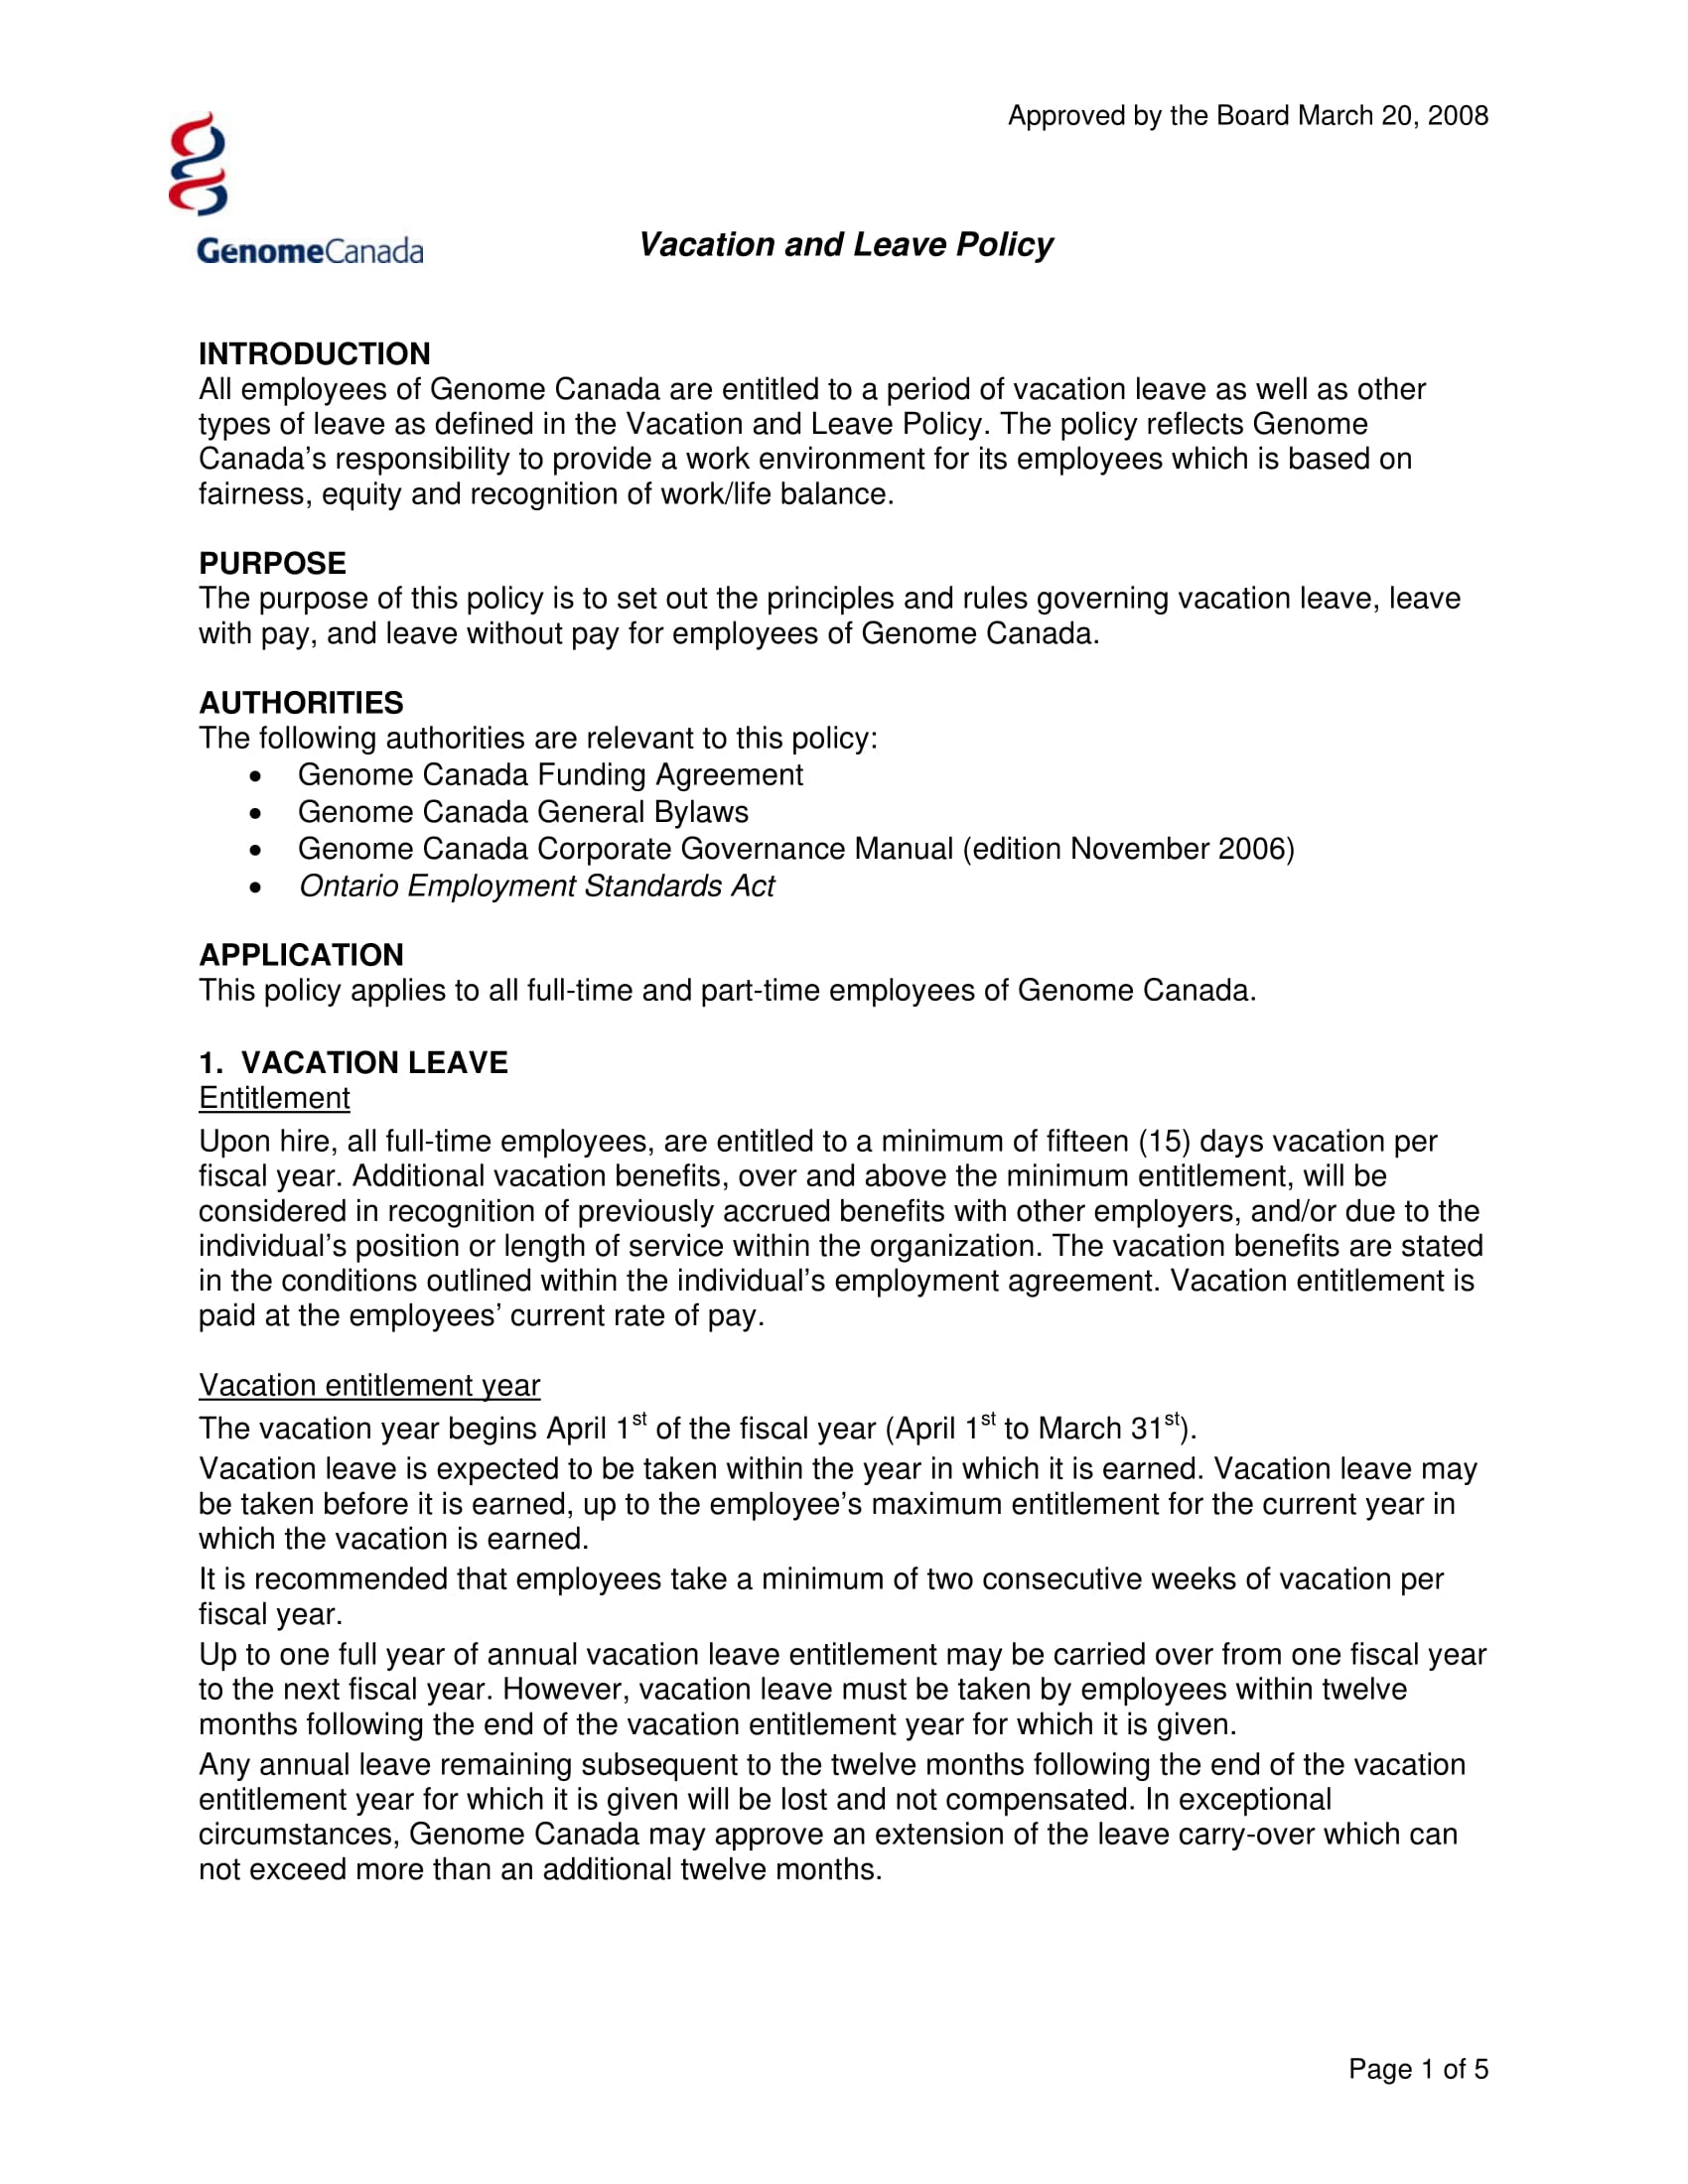 9 Vacation Policy Examples Pdf